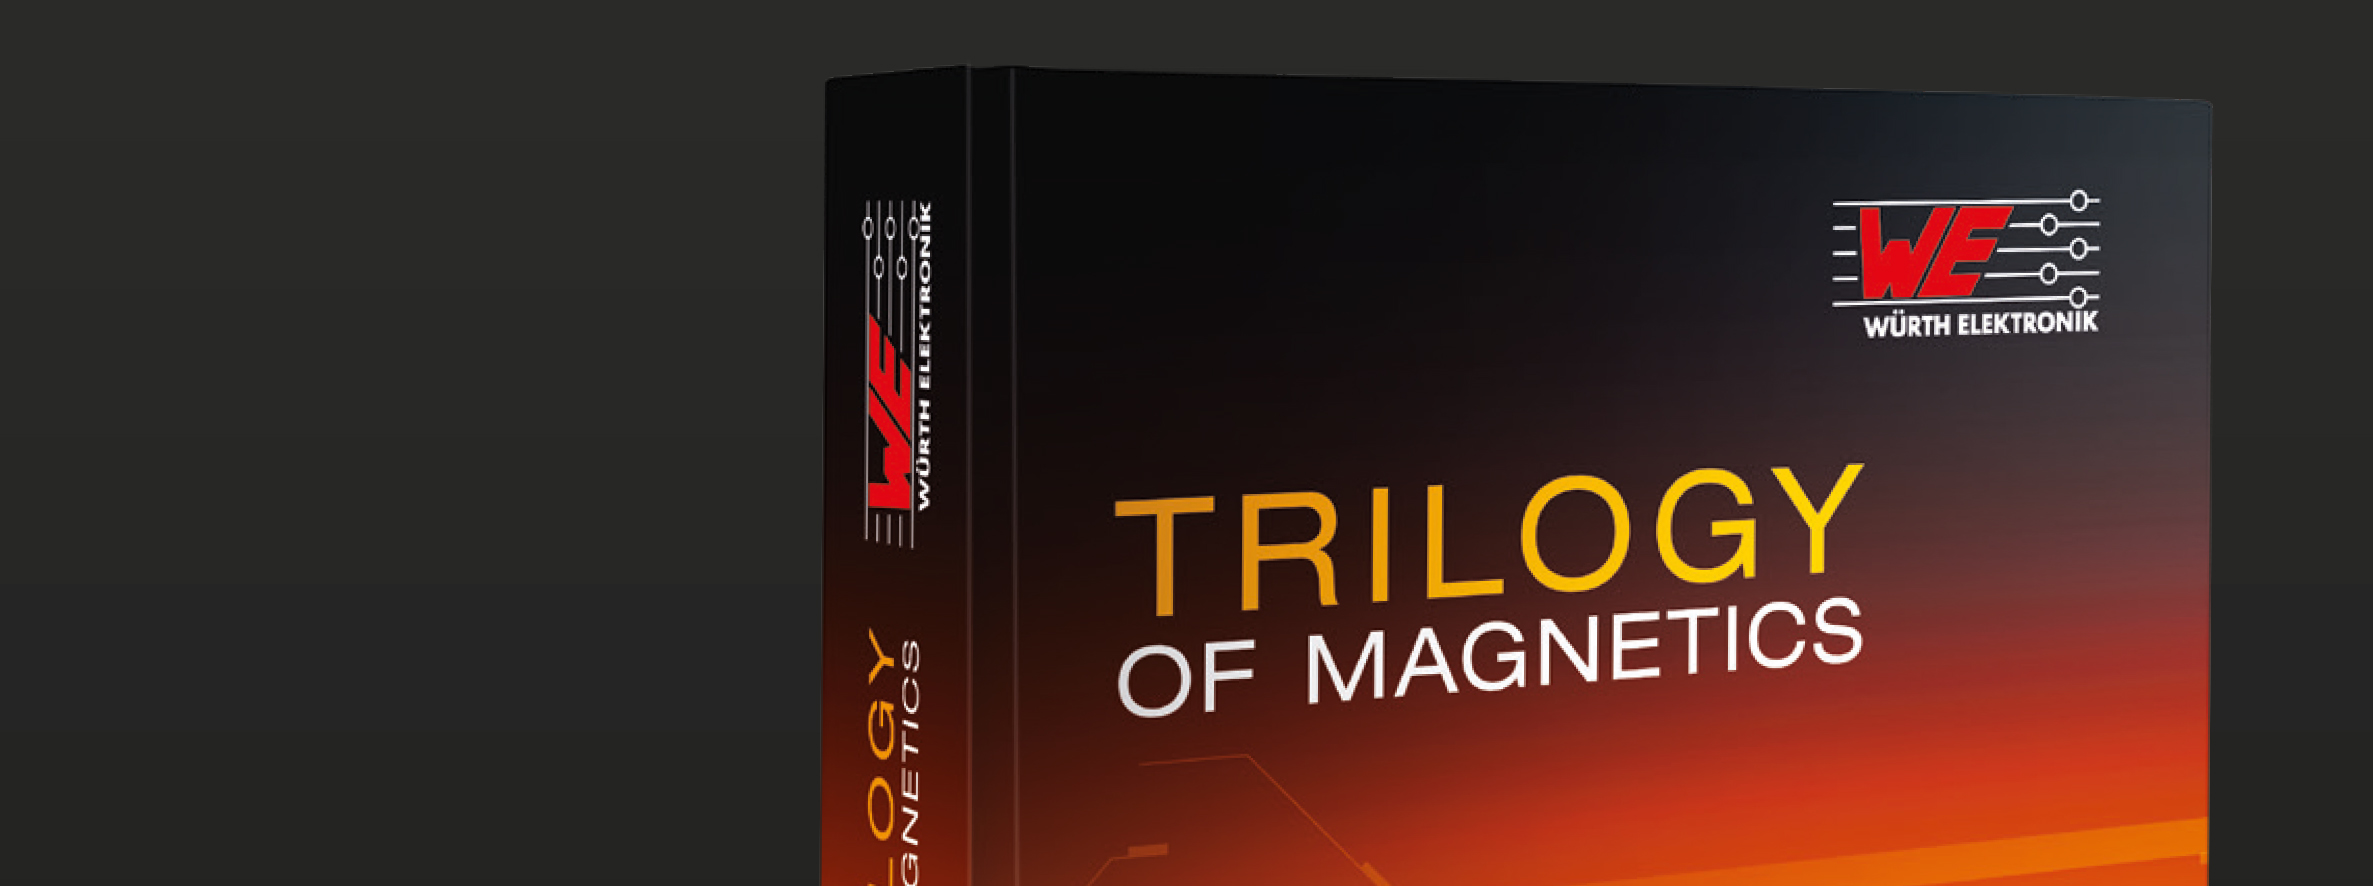 Trilogy of Magnetics | Würth Elektronik: Electronic